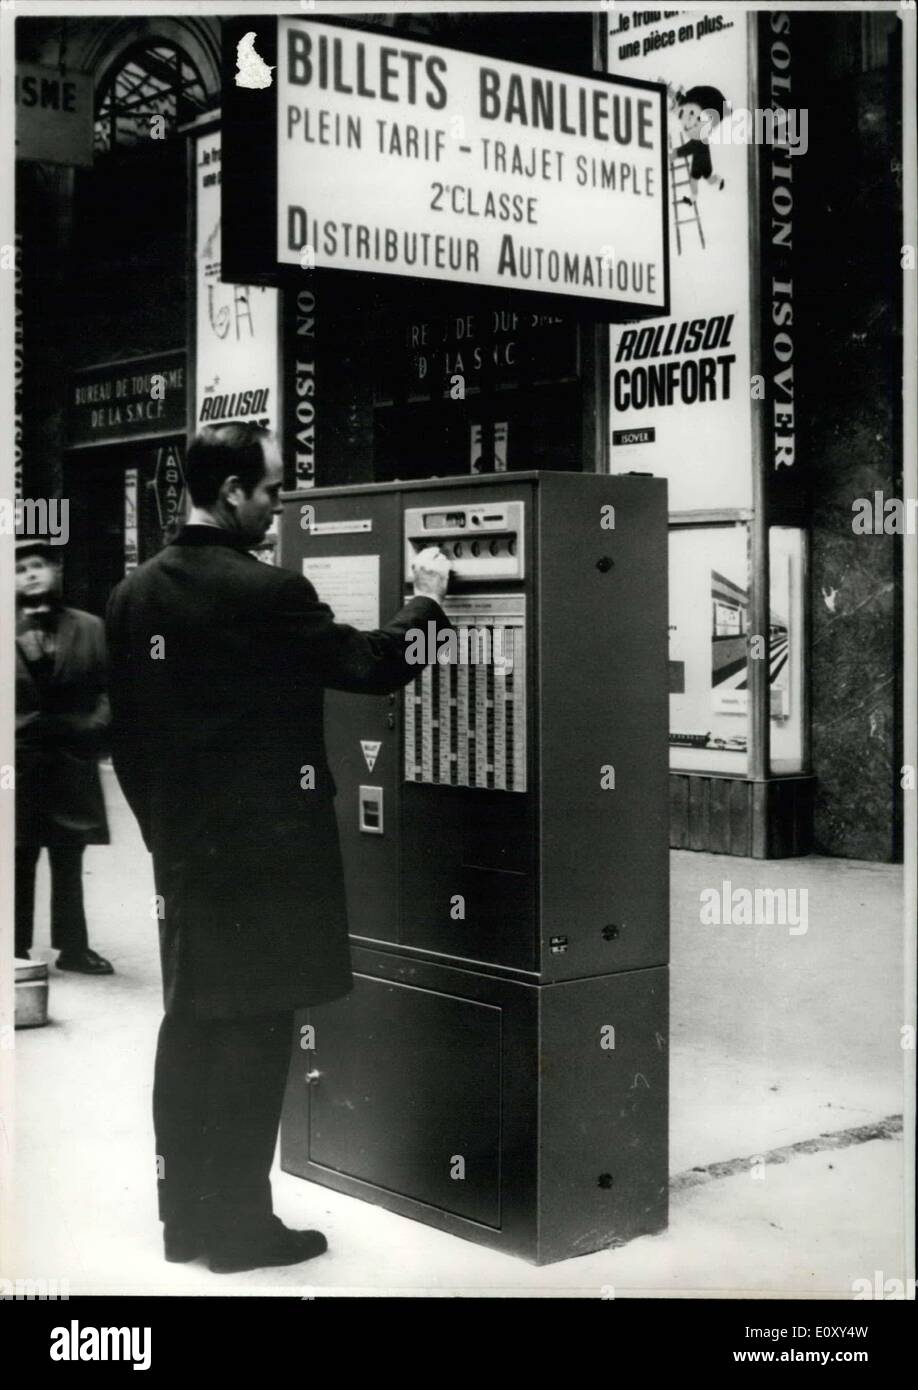 Jan. 26, 1968 - You no longer have to waste time standing in line to buy a ticket thanks to these automatic ticket dispensers. You only have to push the button corresponding to your destination and then you will see the price of your ticket. After giving you your price, the machine prints the ticket, ejects it, and gives you back your change. - Stock Image